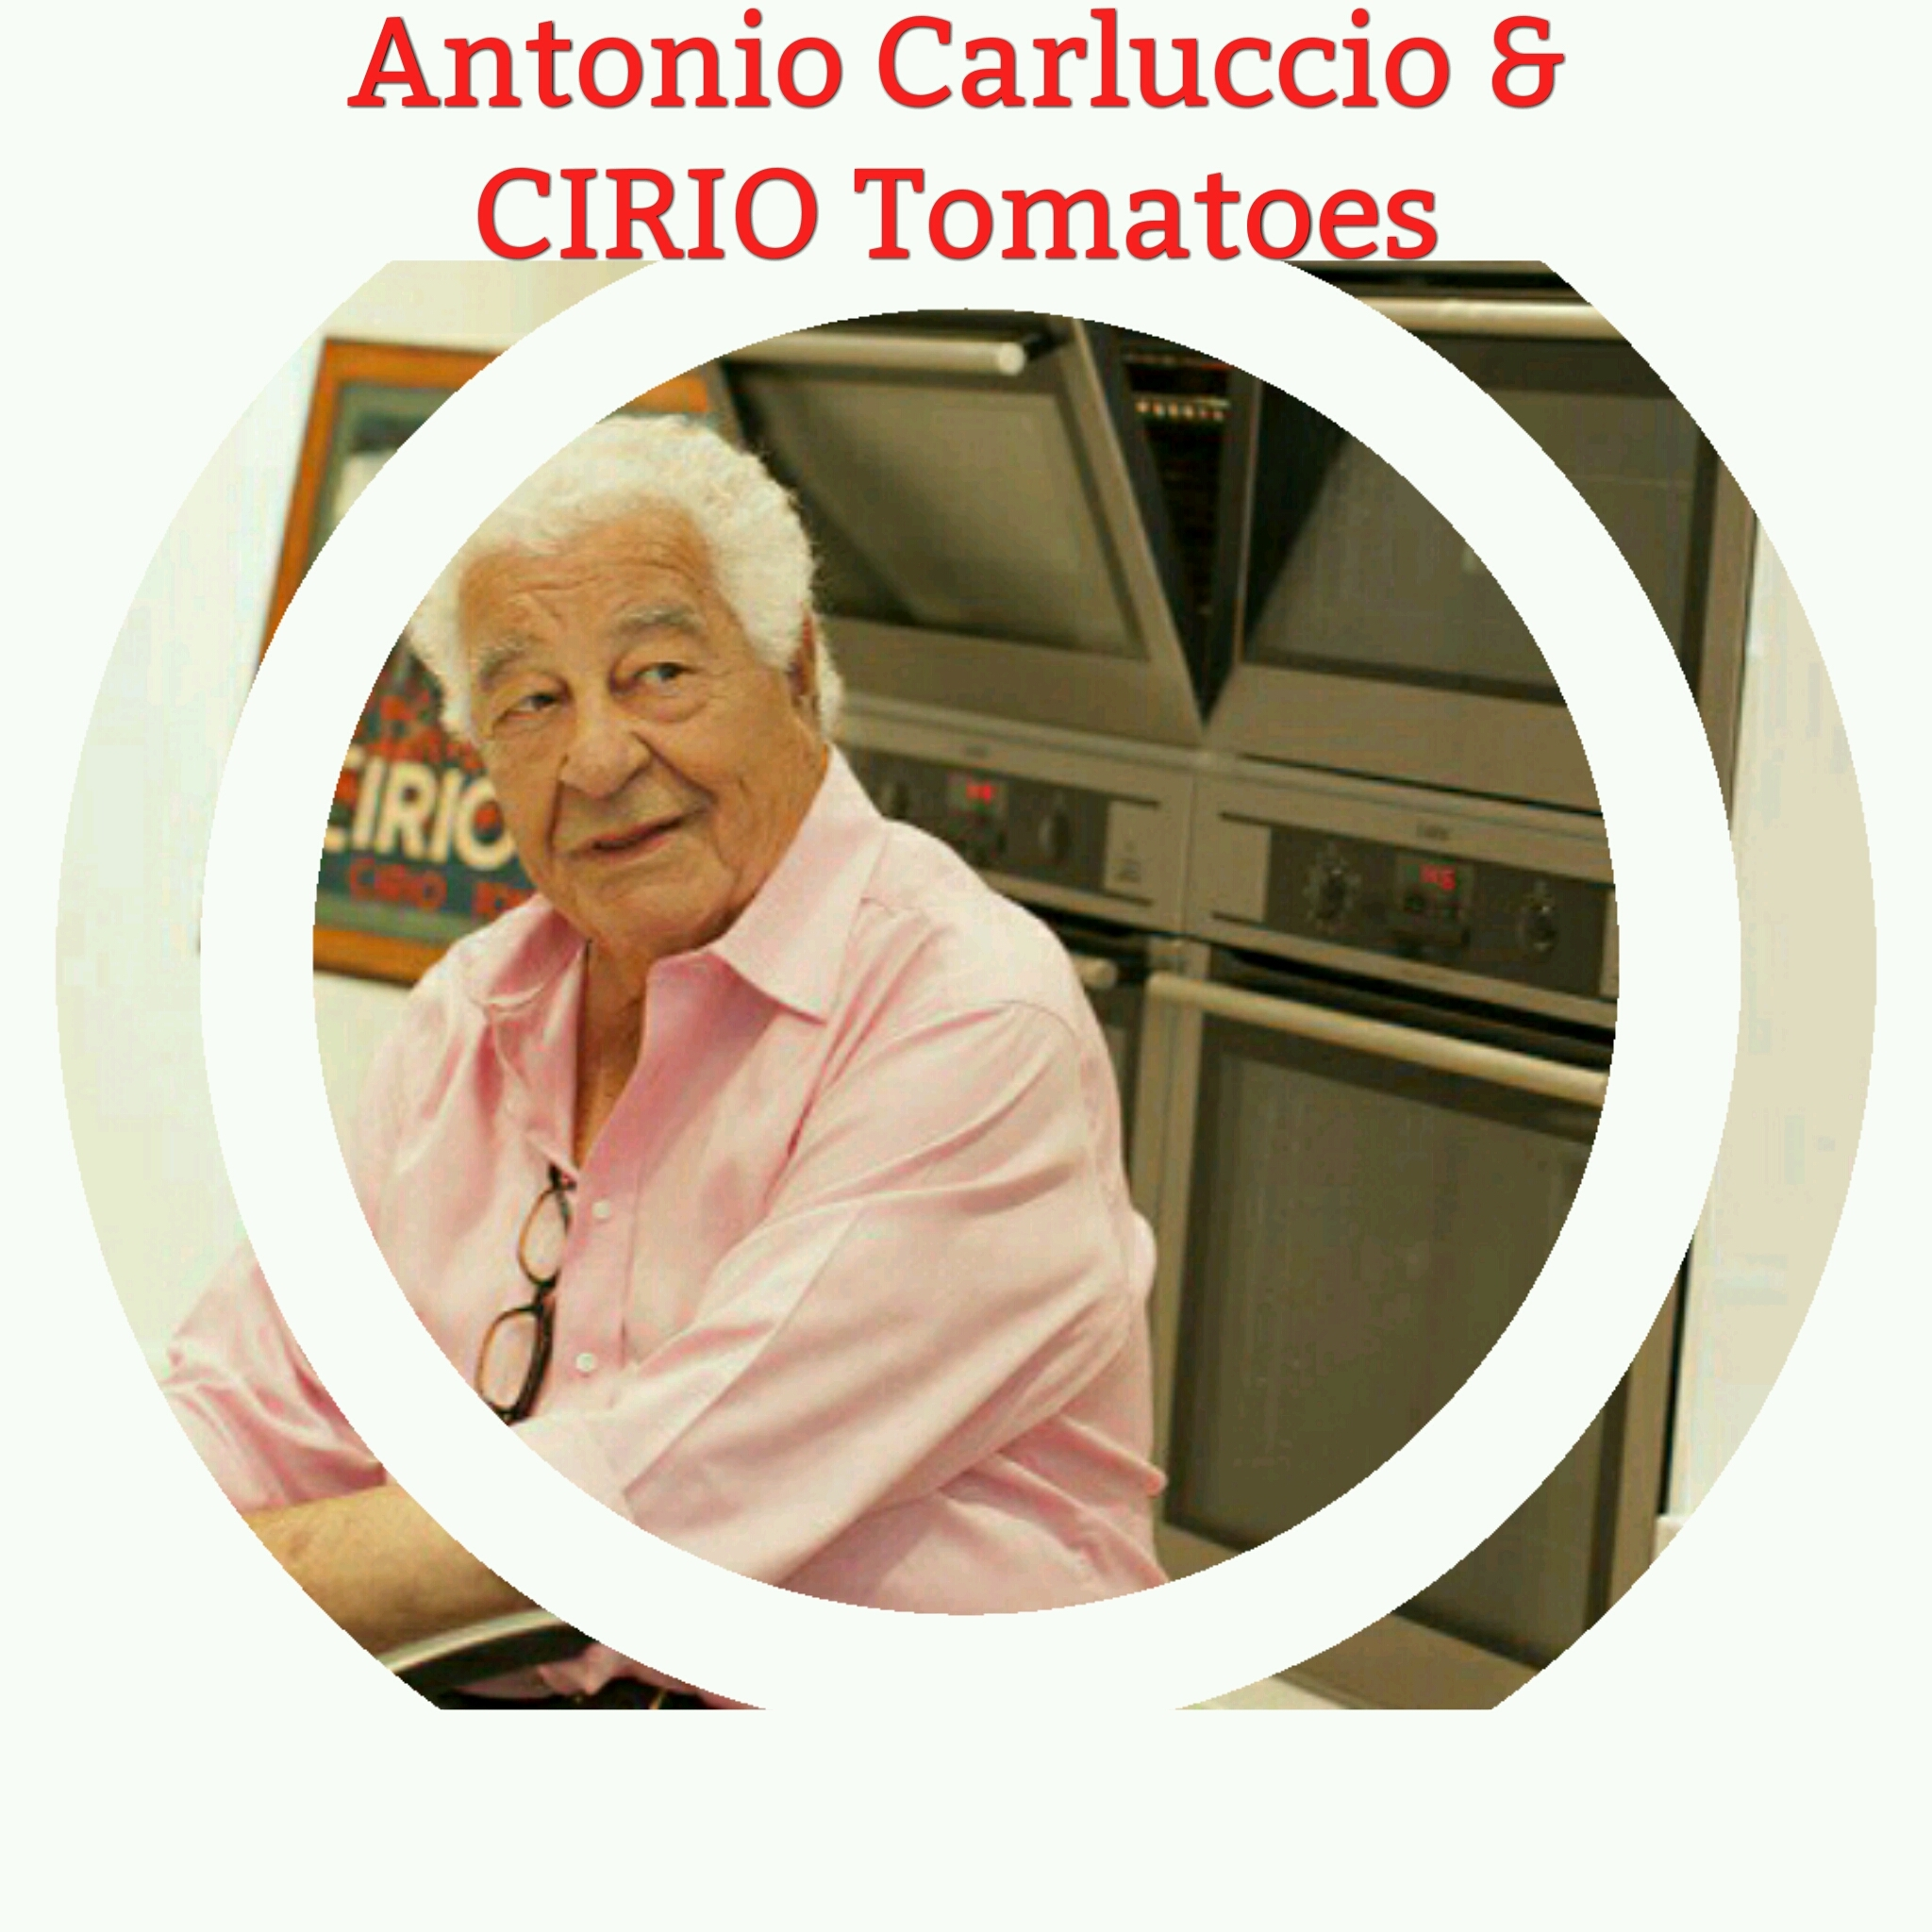 an evening with antonio carluccio and cirio tomatoes